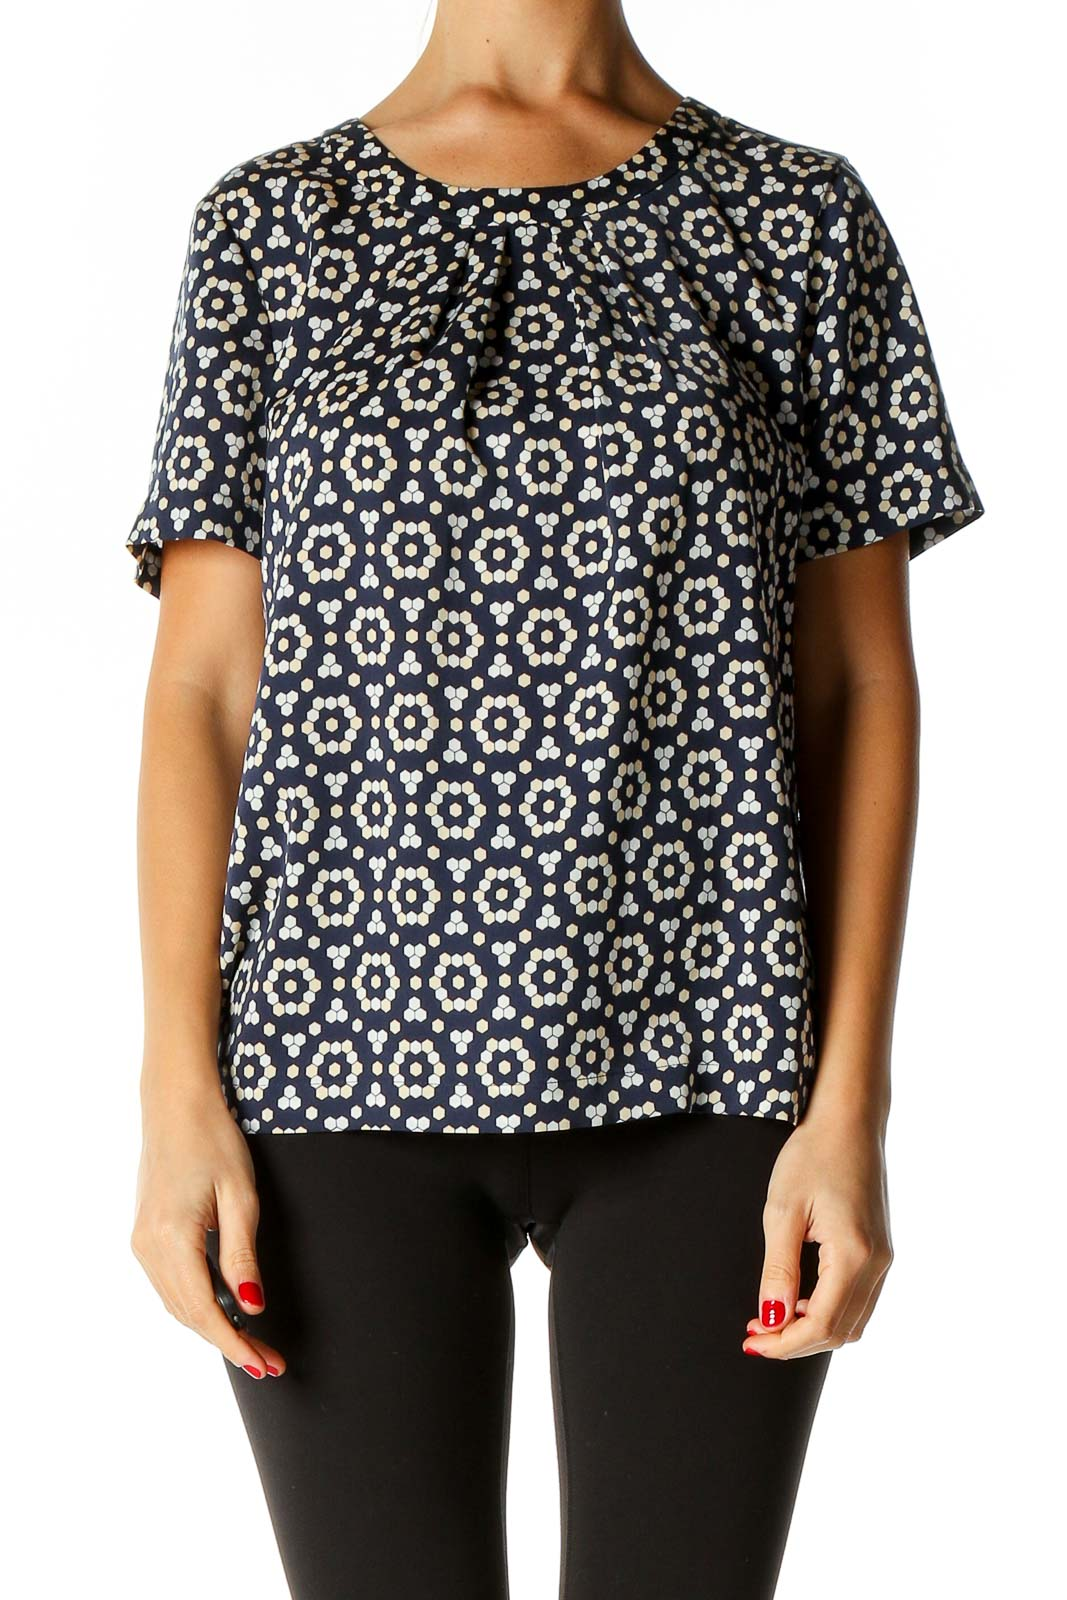 Blue Geometric Print All Day Wear Blouse Front